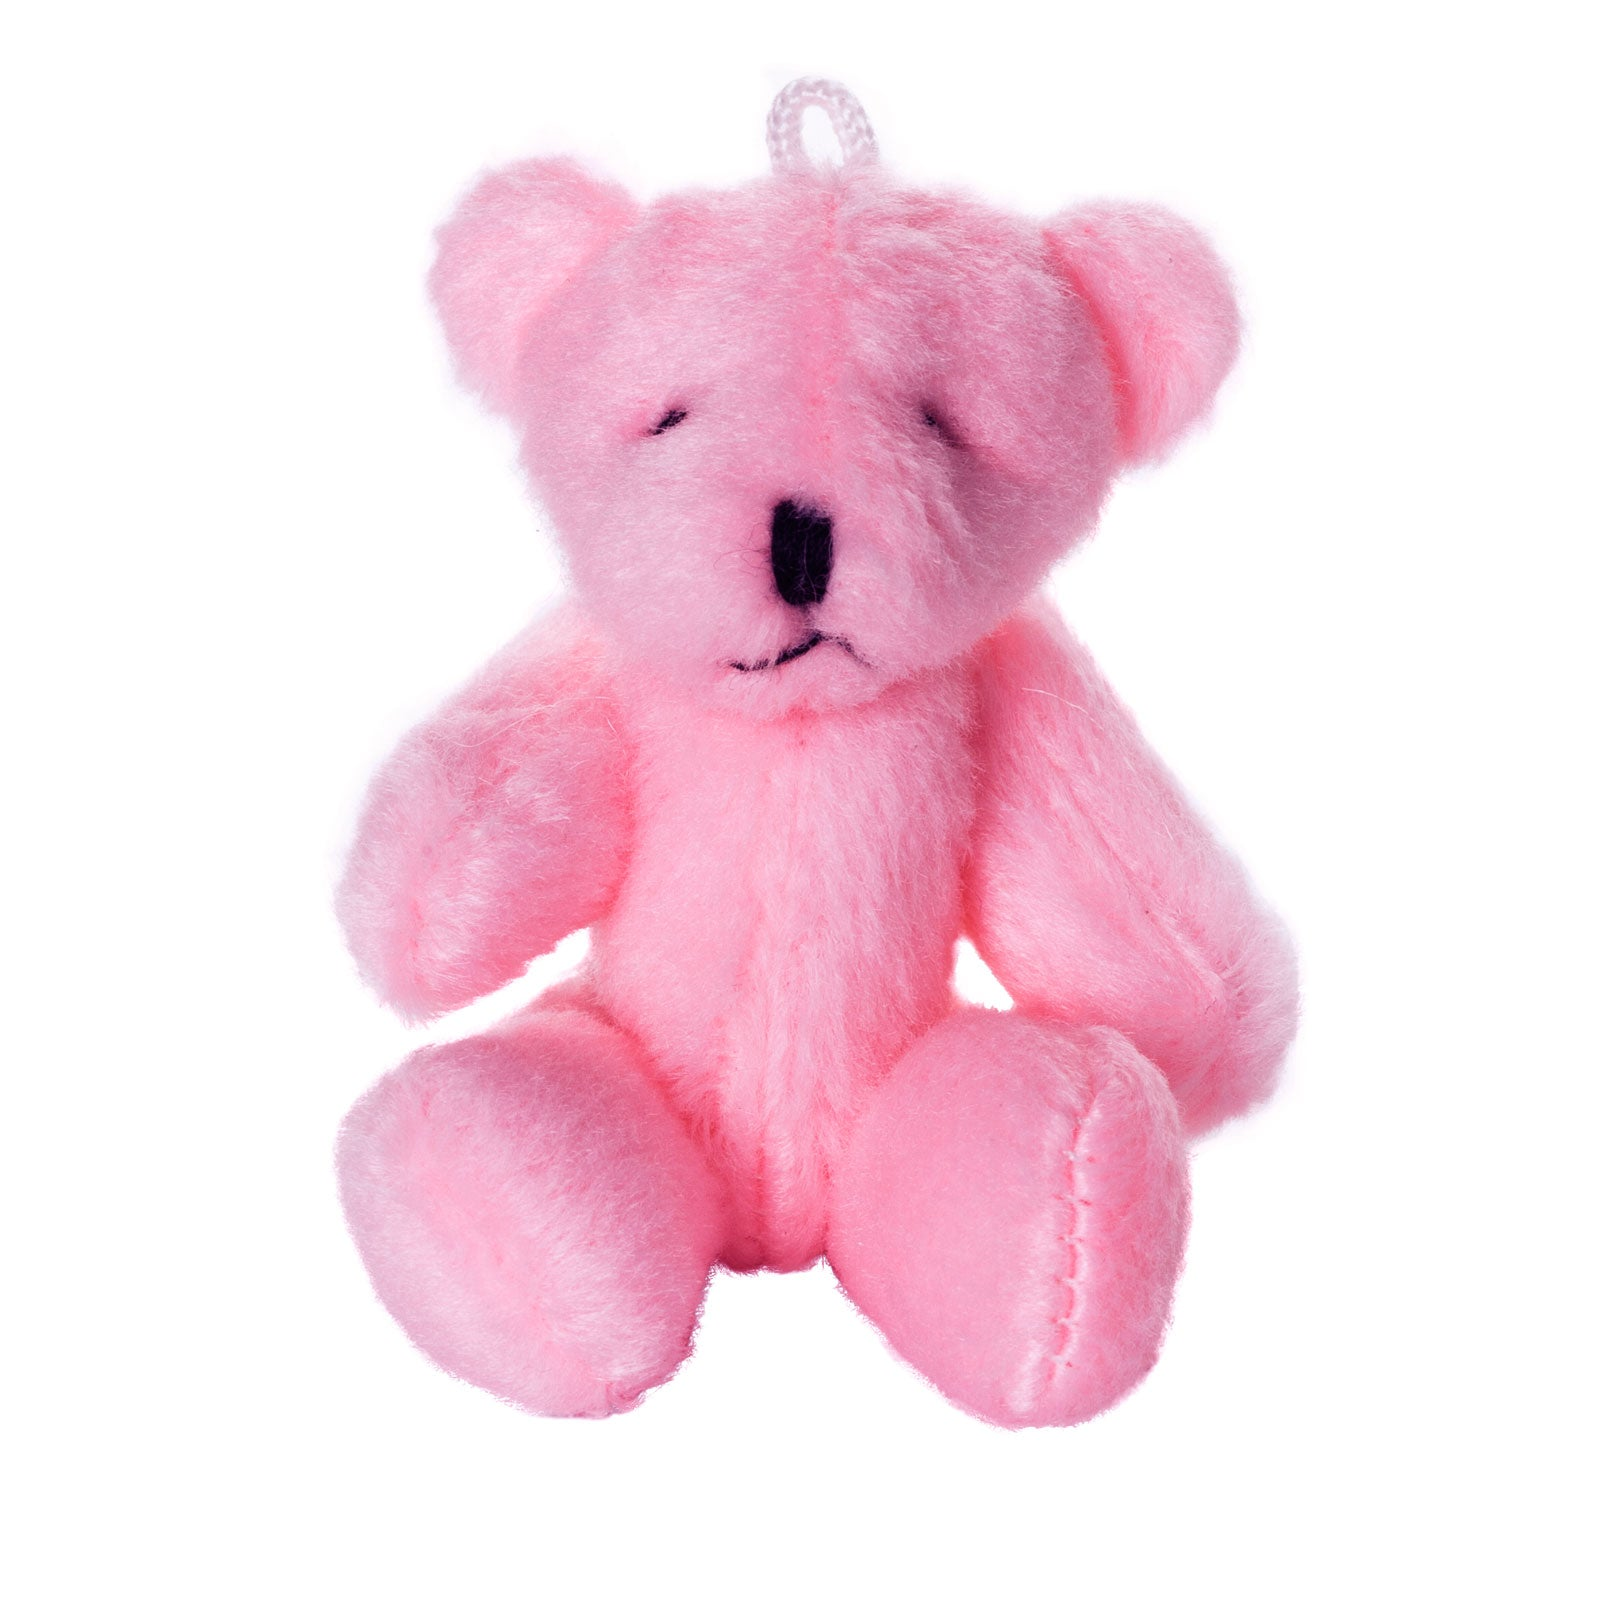 Small PINK Teddy Bears X 95 - Cute Soft Adorable